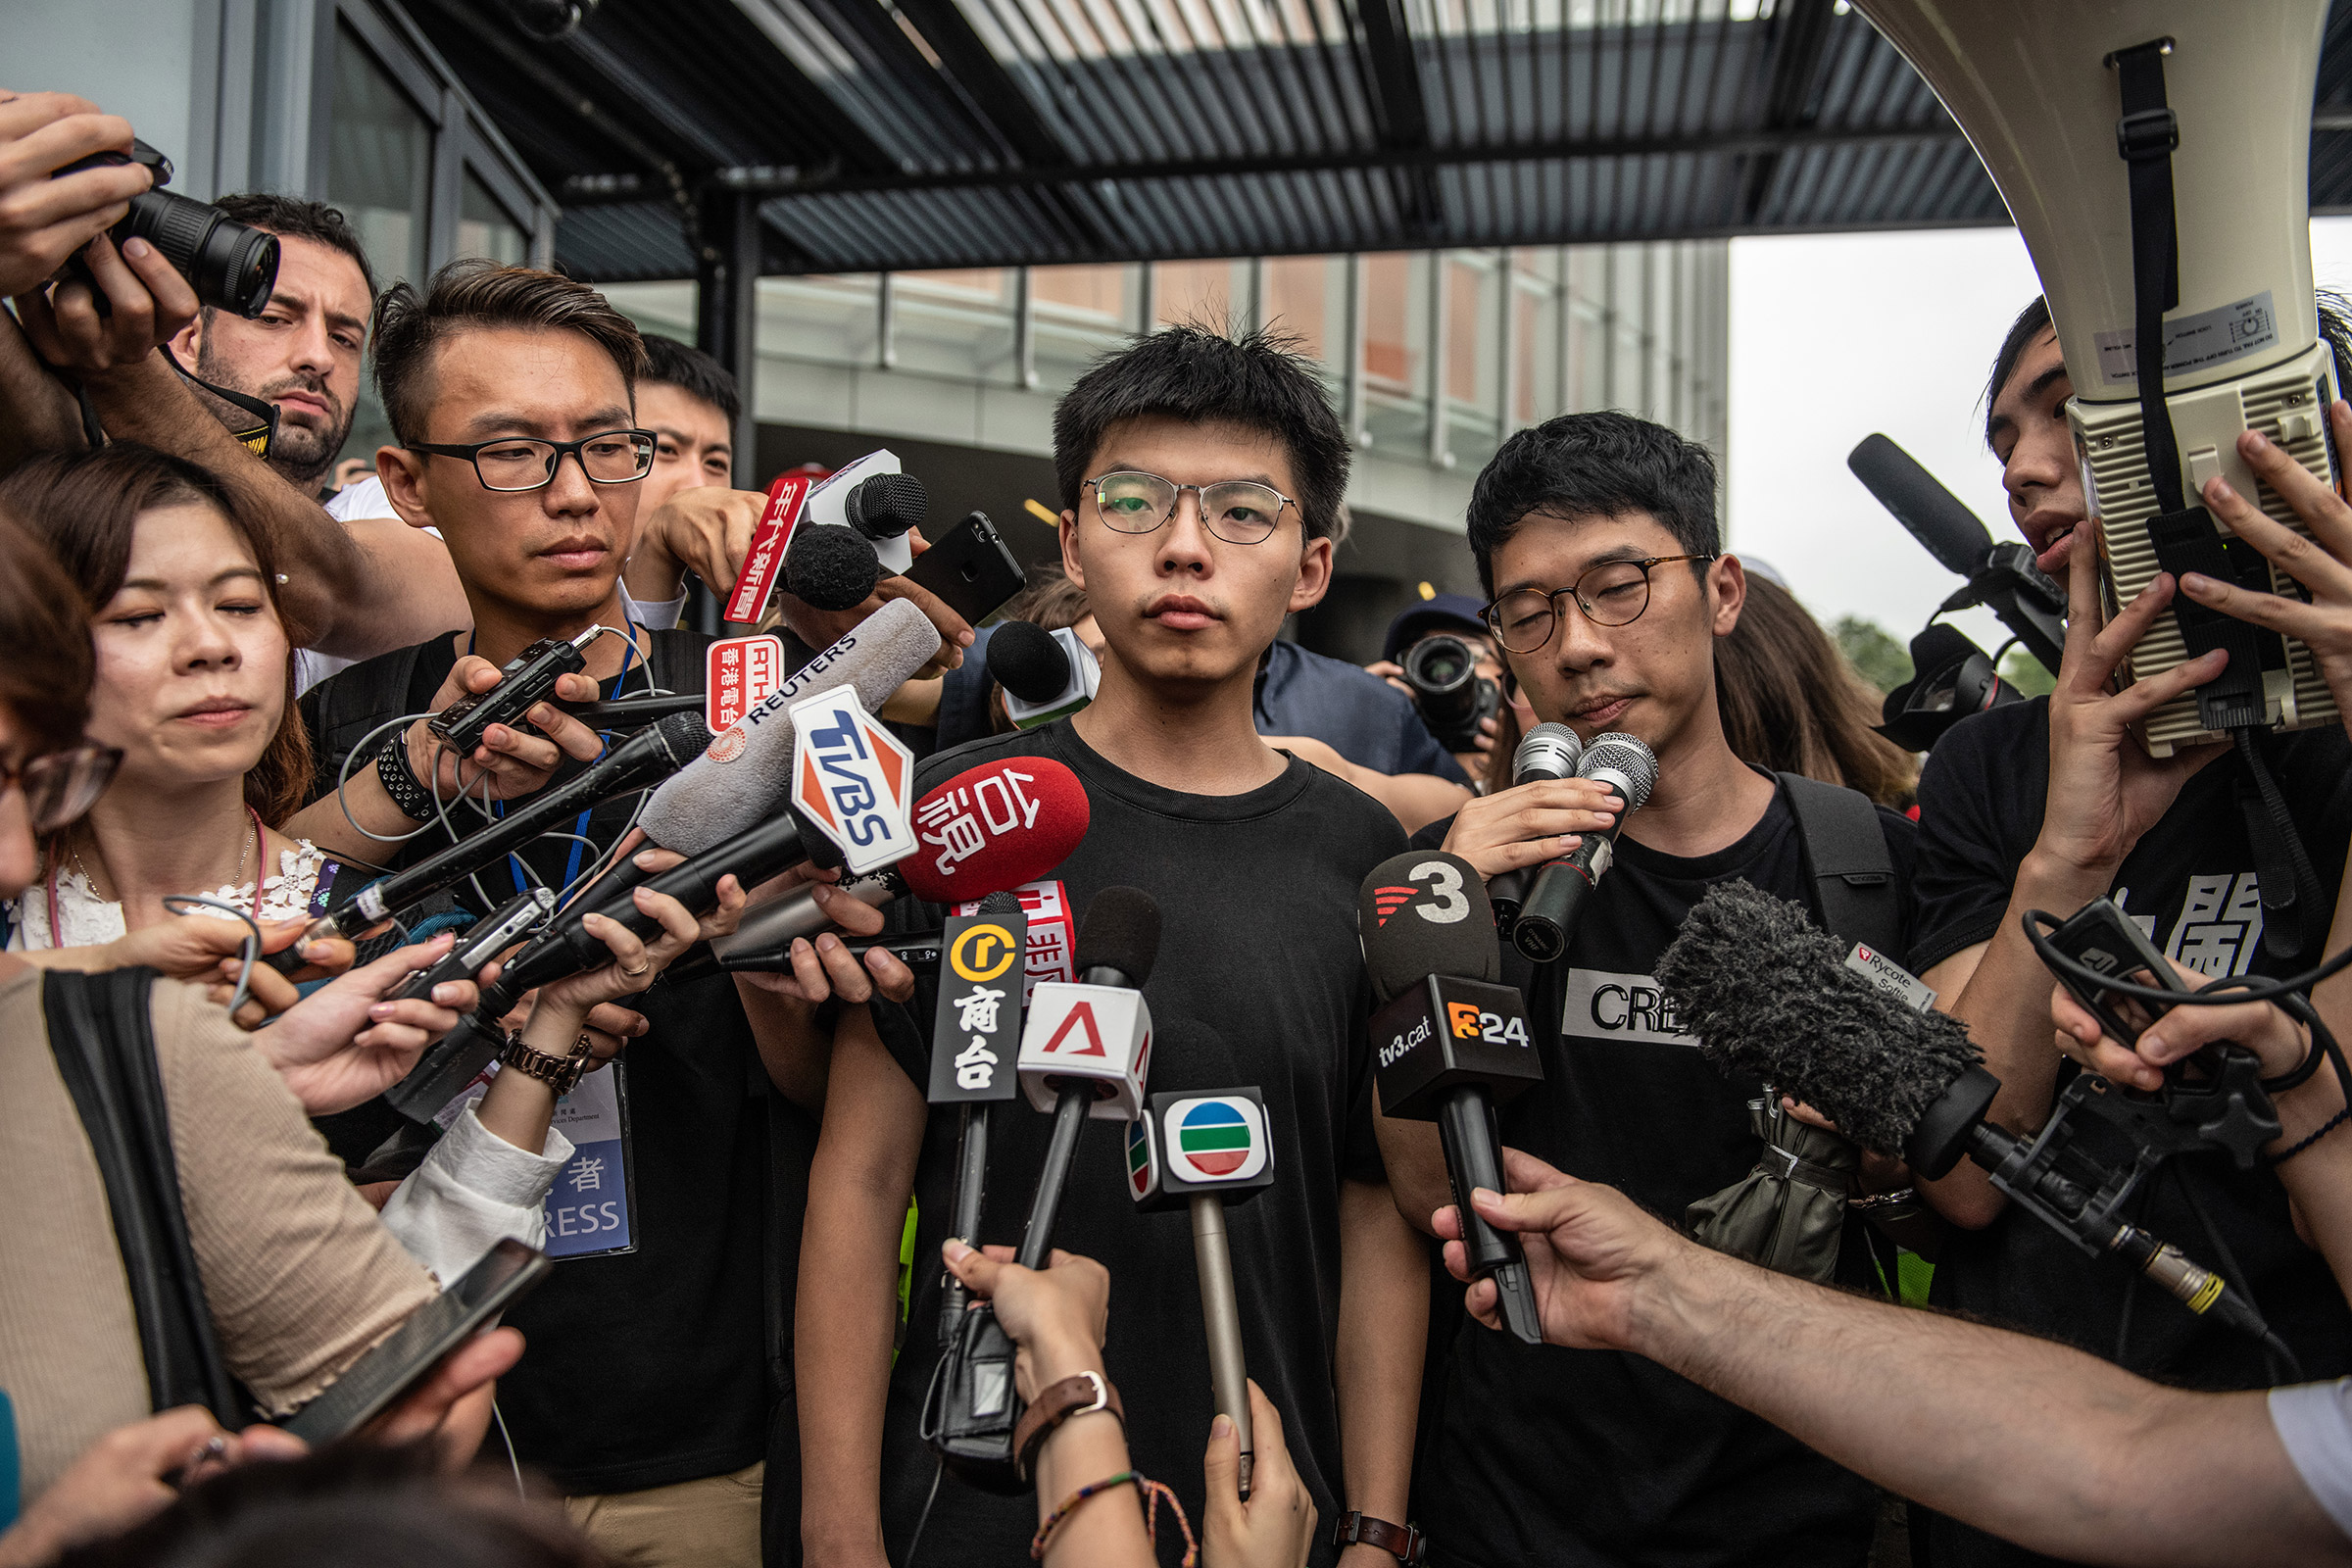 Pro-democracy activist Joshua Wong speaks to the media outside the Legislative Council shortly after being released from prison on June 17, 2019 in Hong Kong.